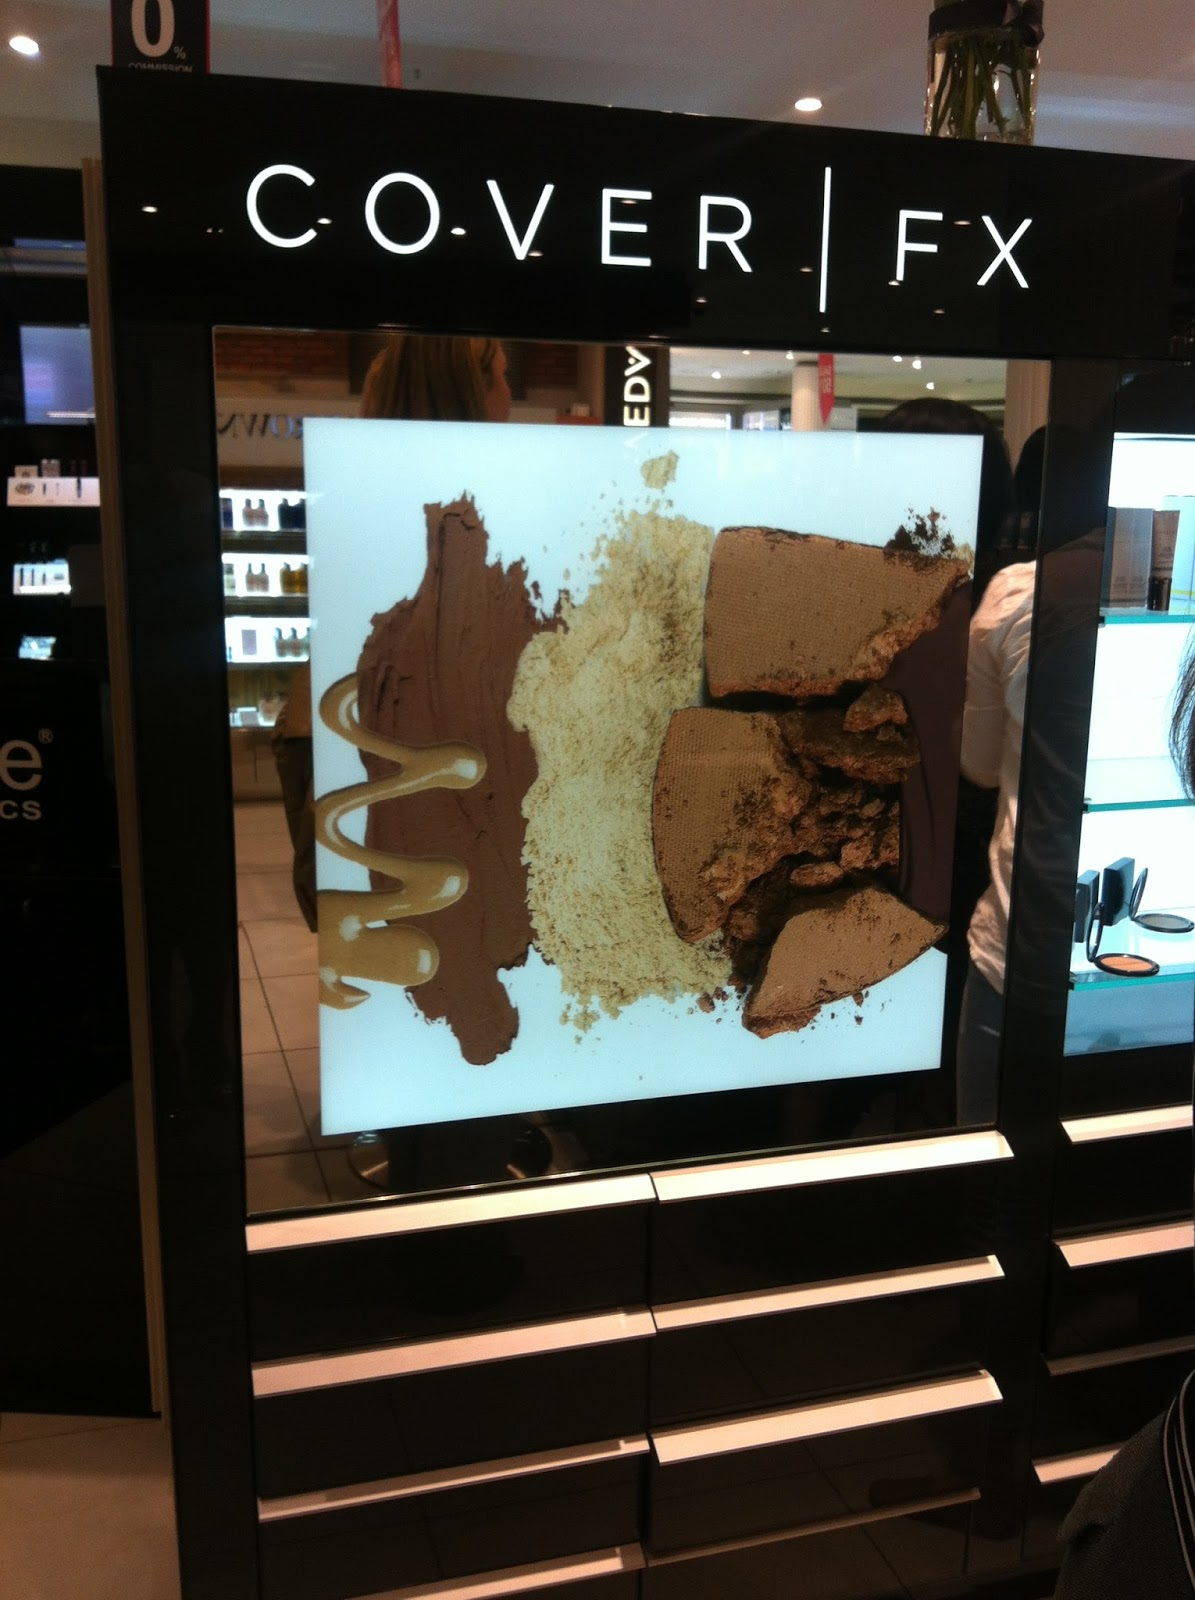 Colour Matched at @coverfx